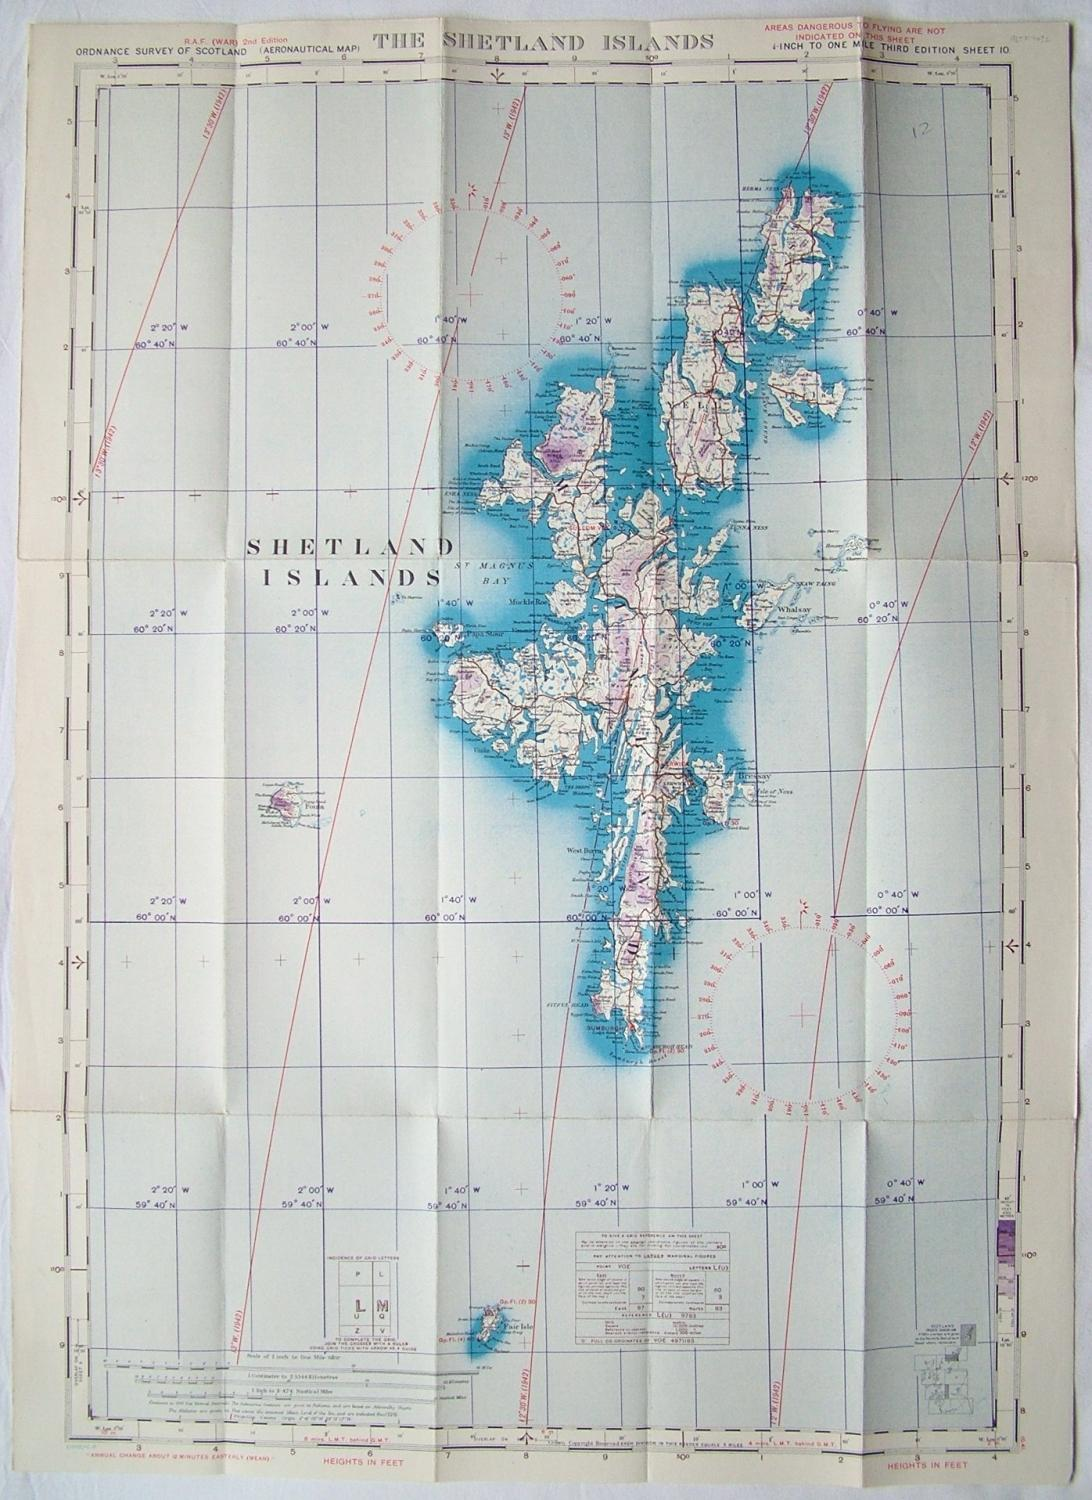 RAF Flight Map - The Shetlands Islands